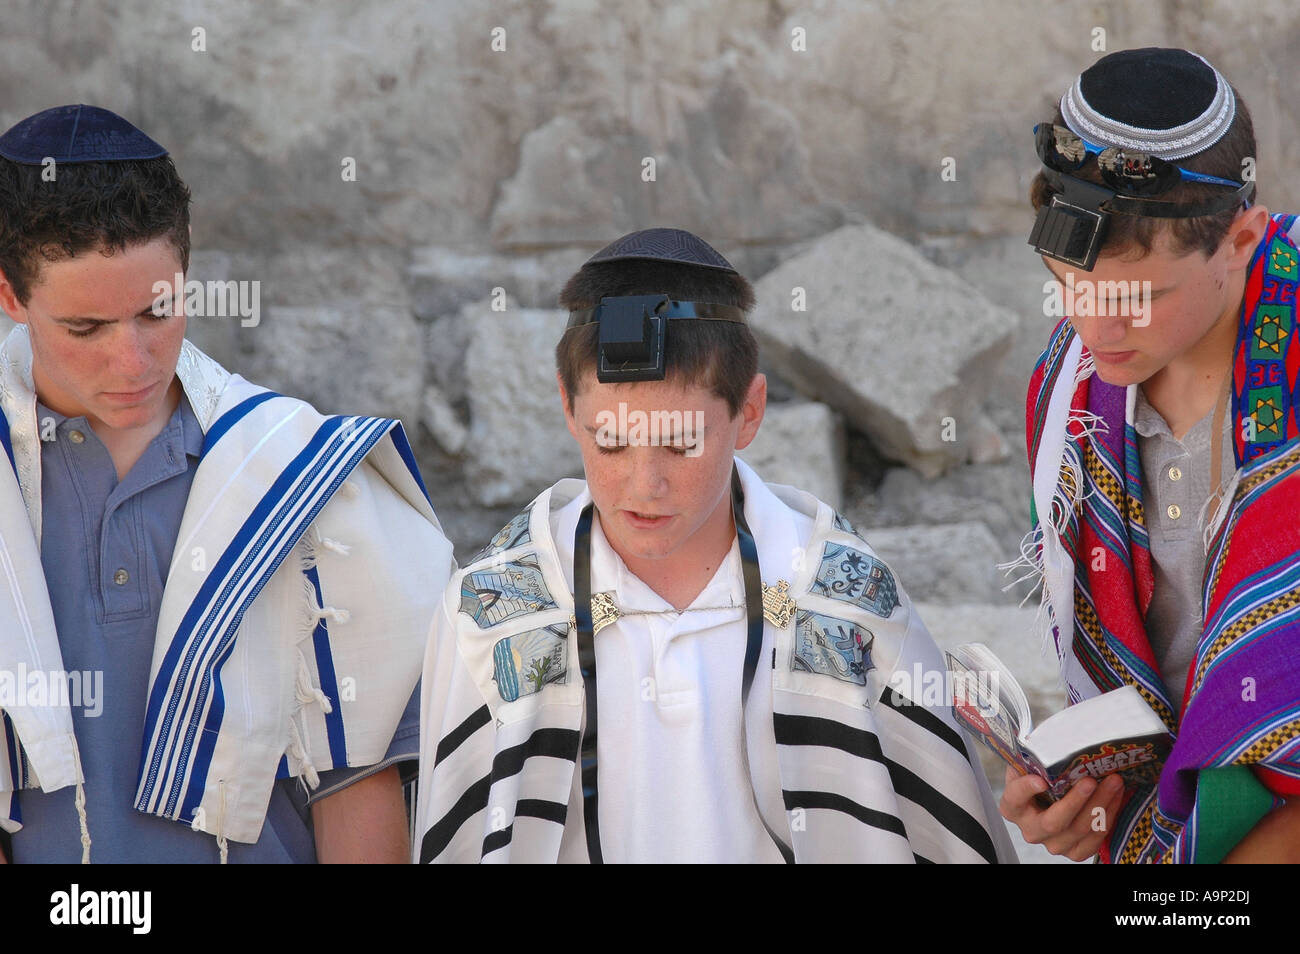 Bar Mitzvah at the Western Wall in Jerusalem Israel - Stock Image